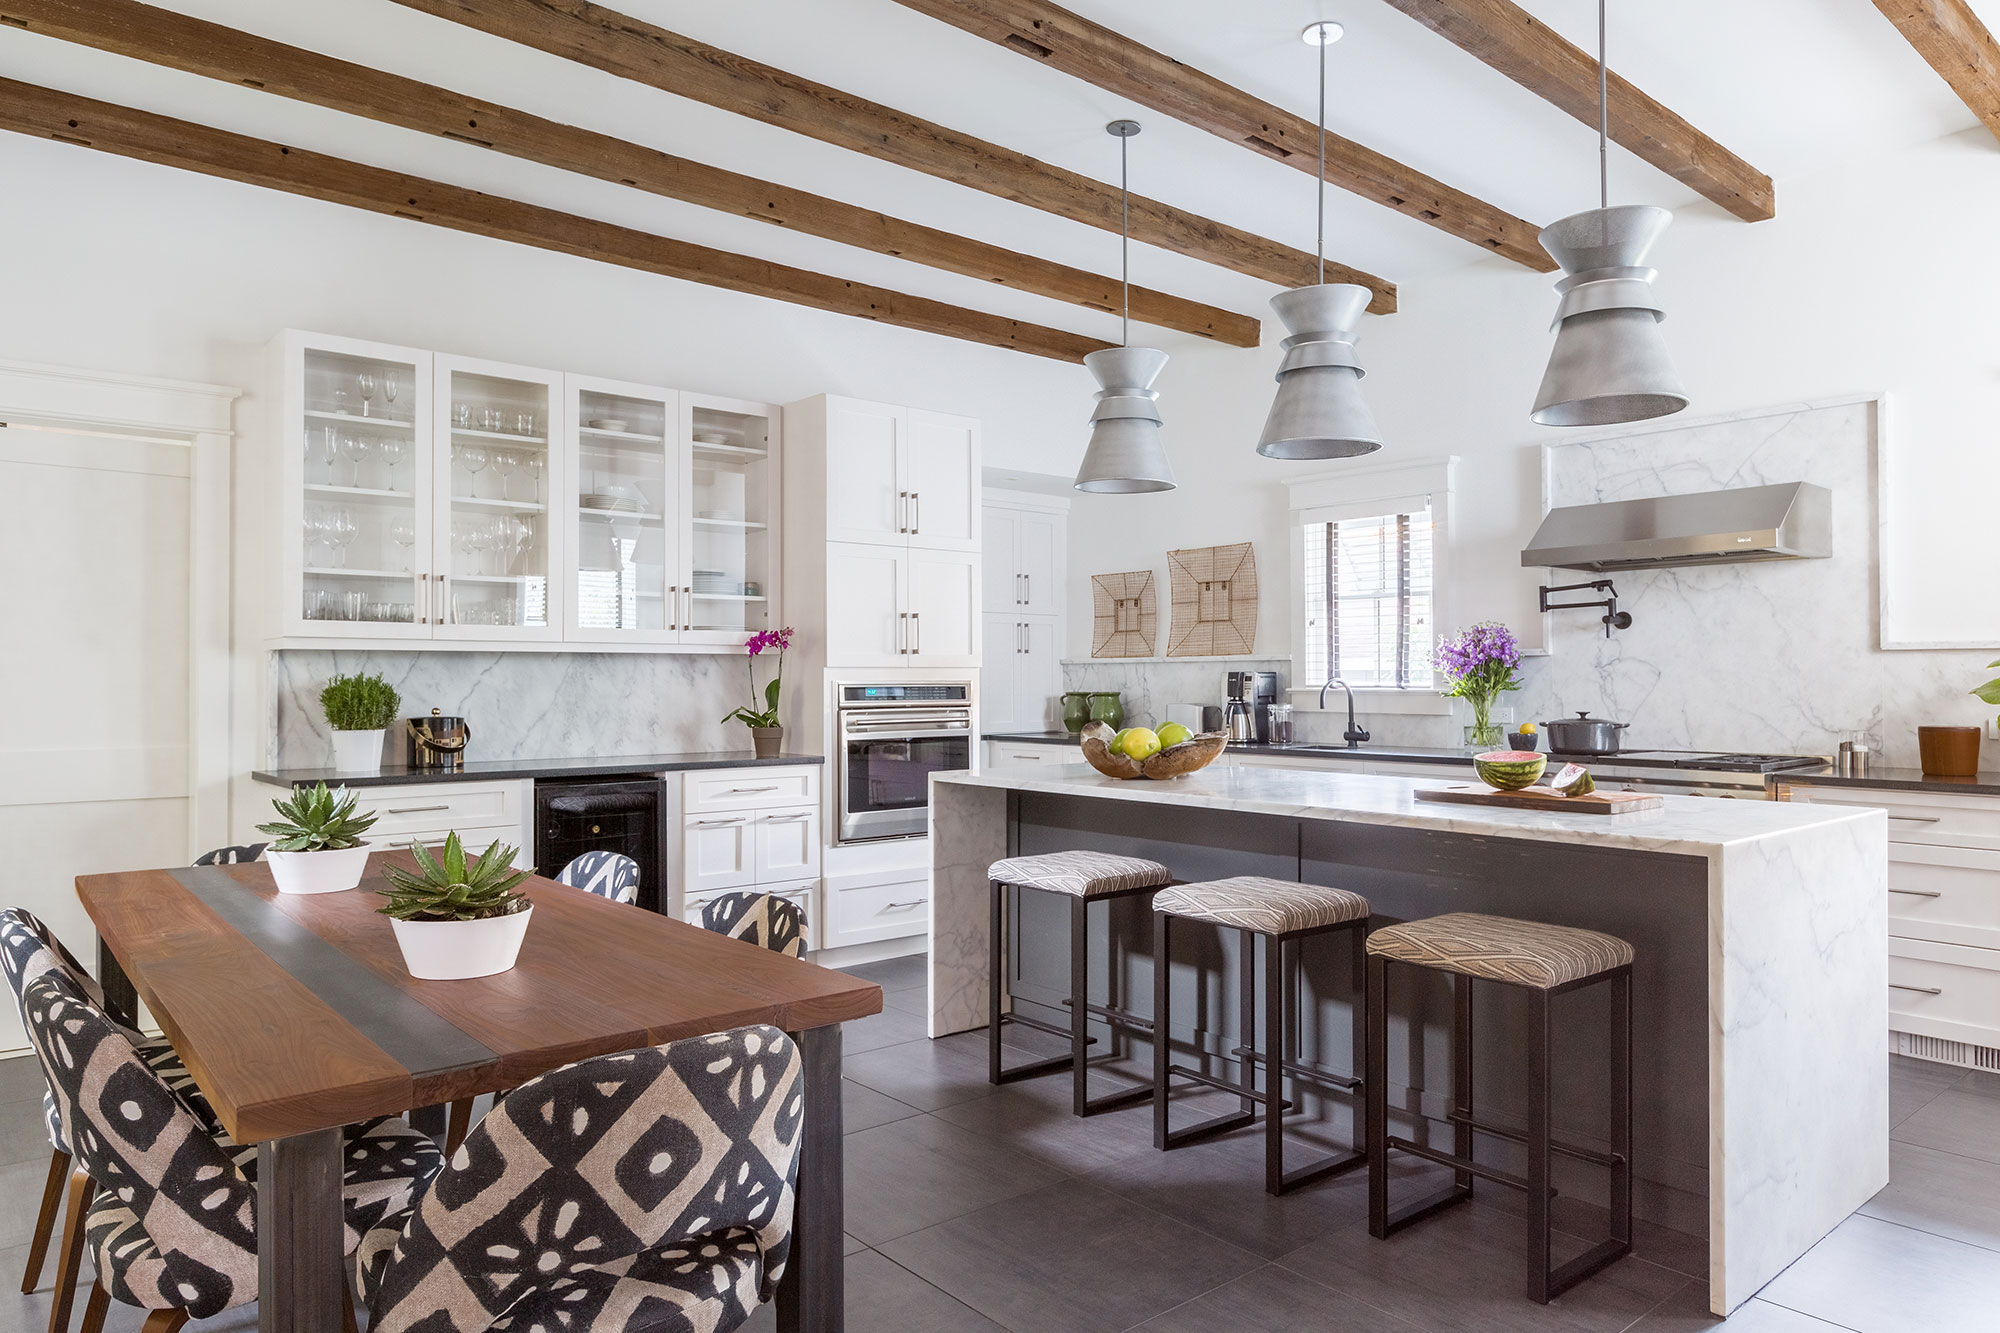 cameron-stewart-cameron-schwabenton-simons-young-architects-cook-bonner-construction-kitchen.jpg